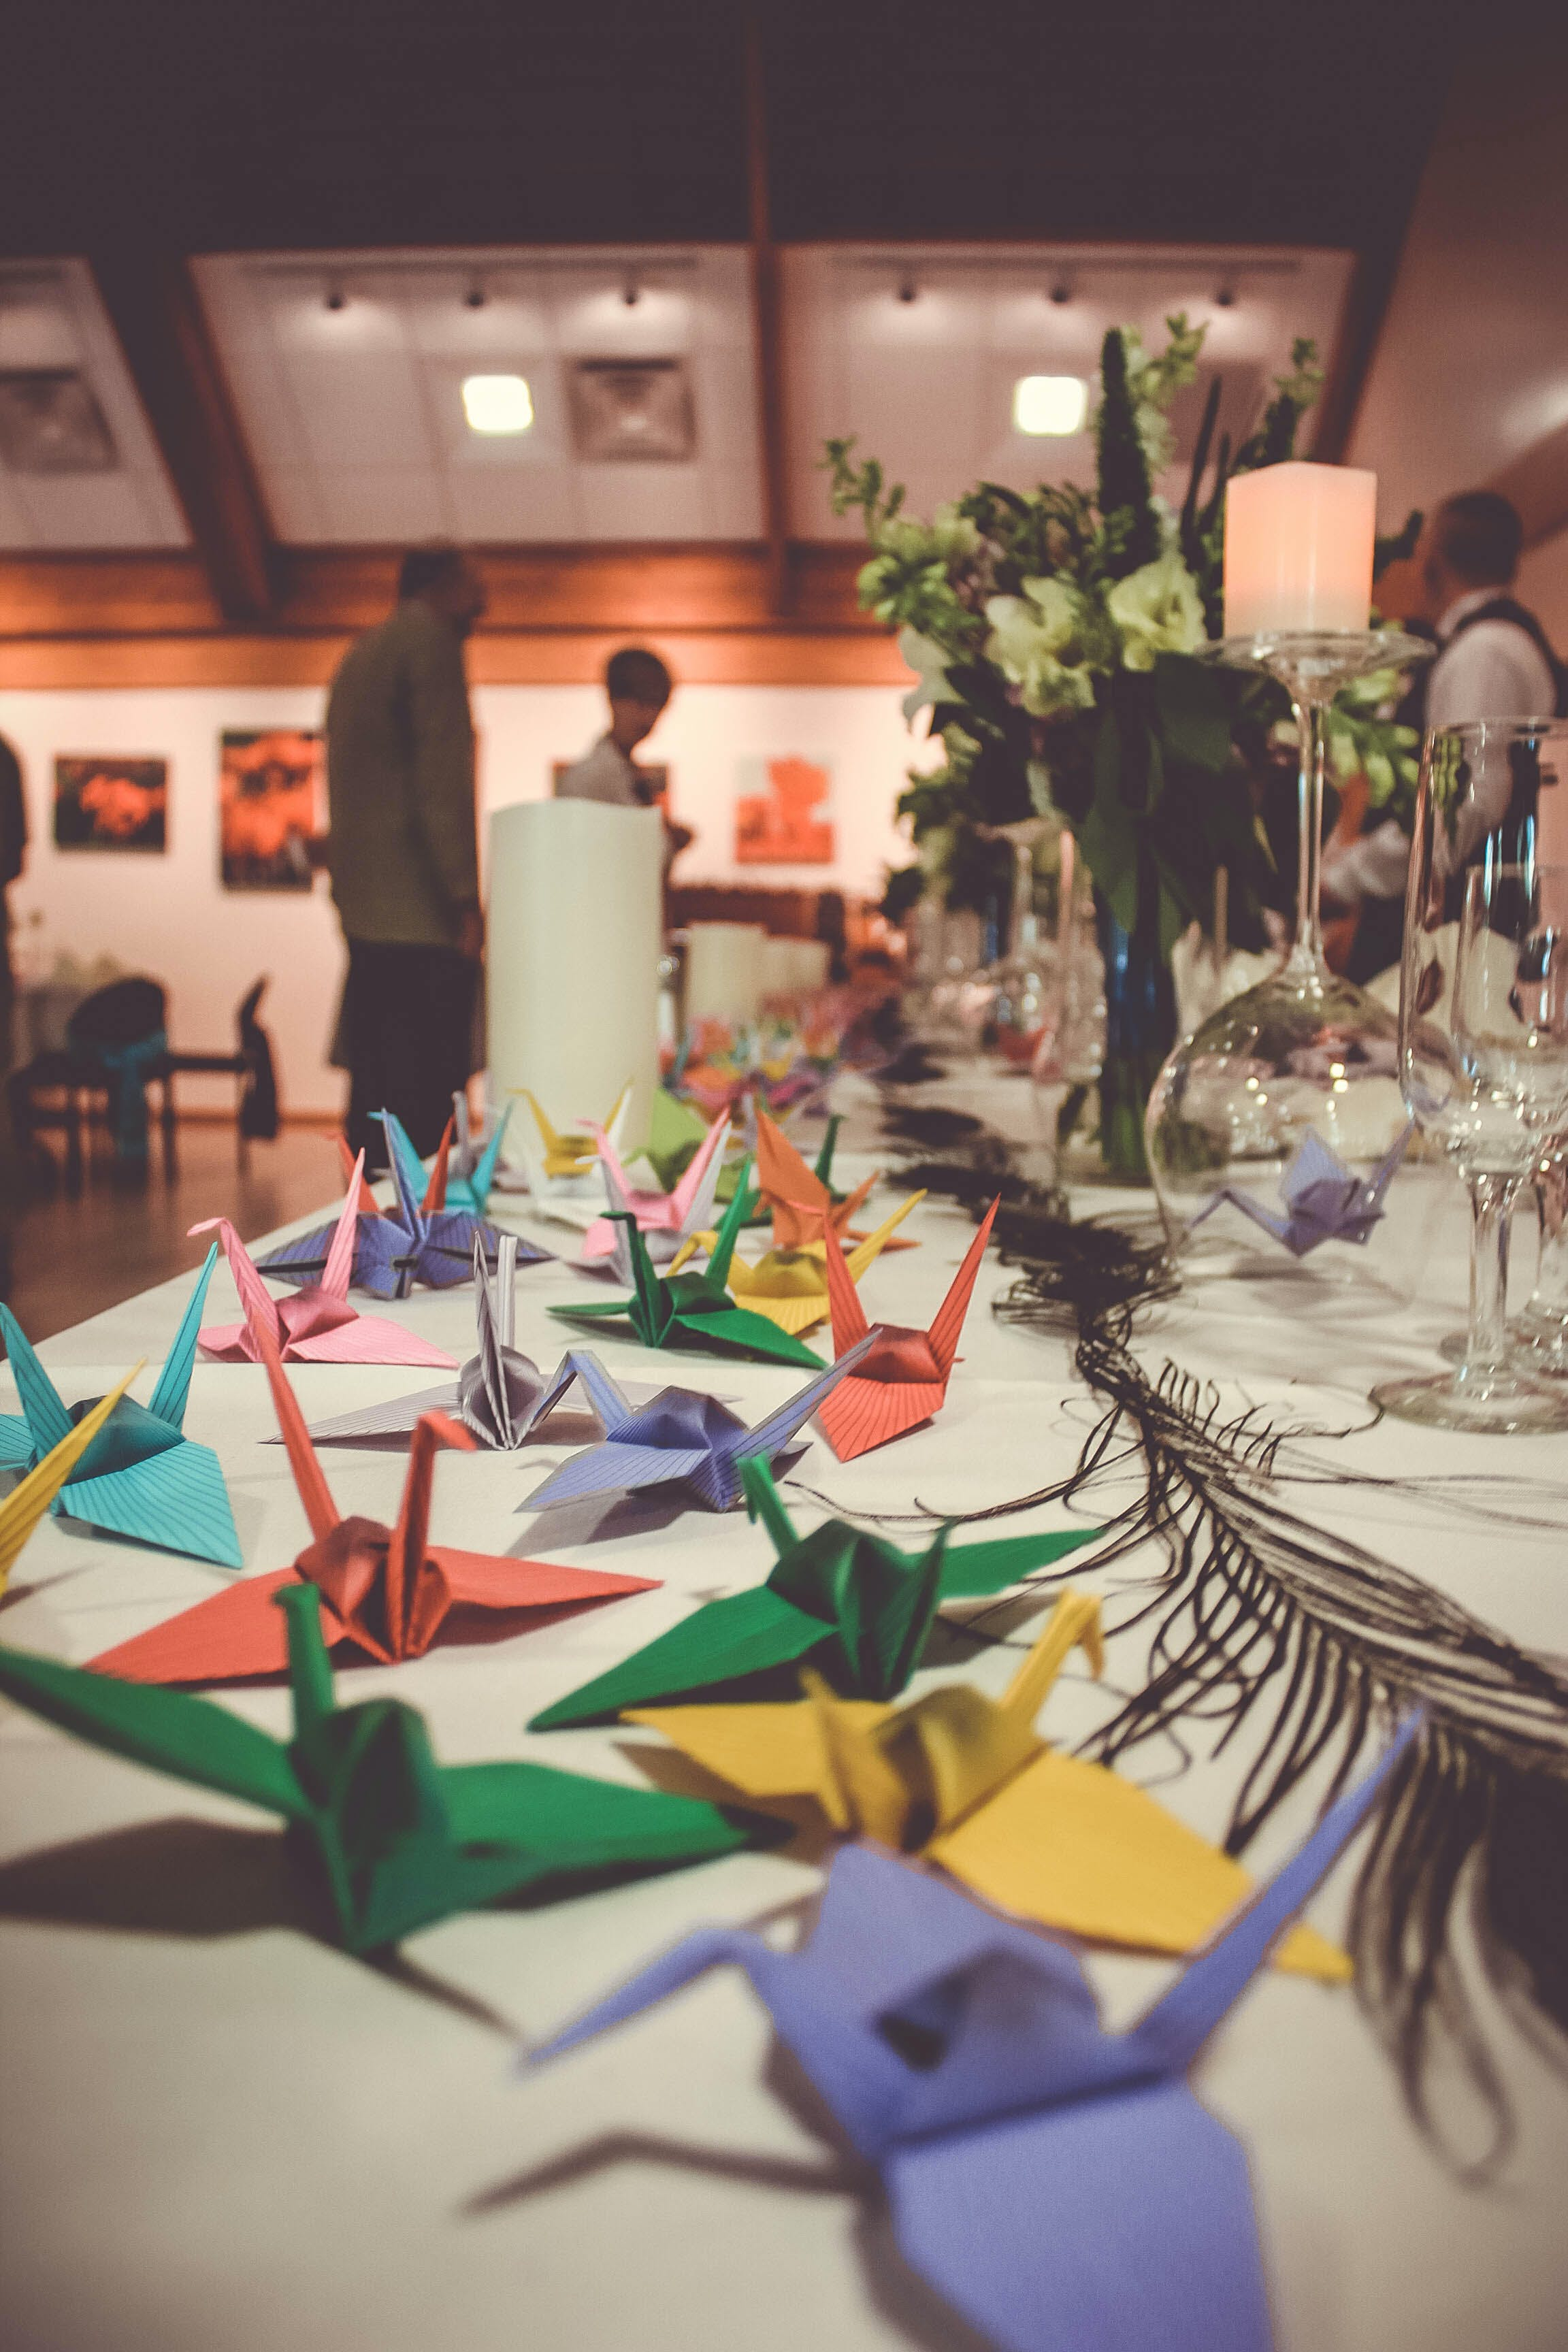 Free stock photo of center piece, centerpeice, colorful, origami